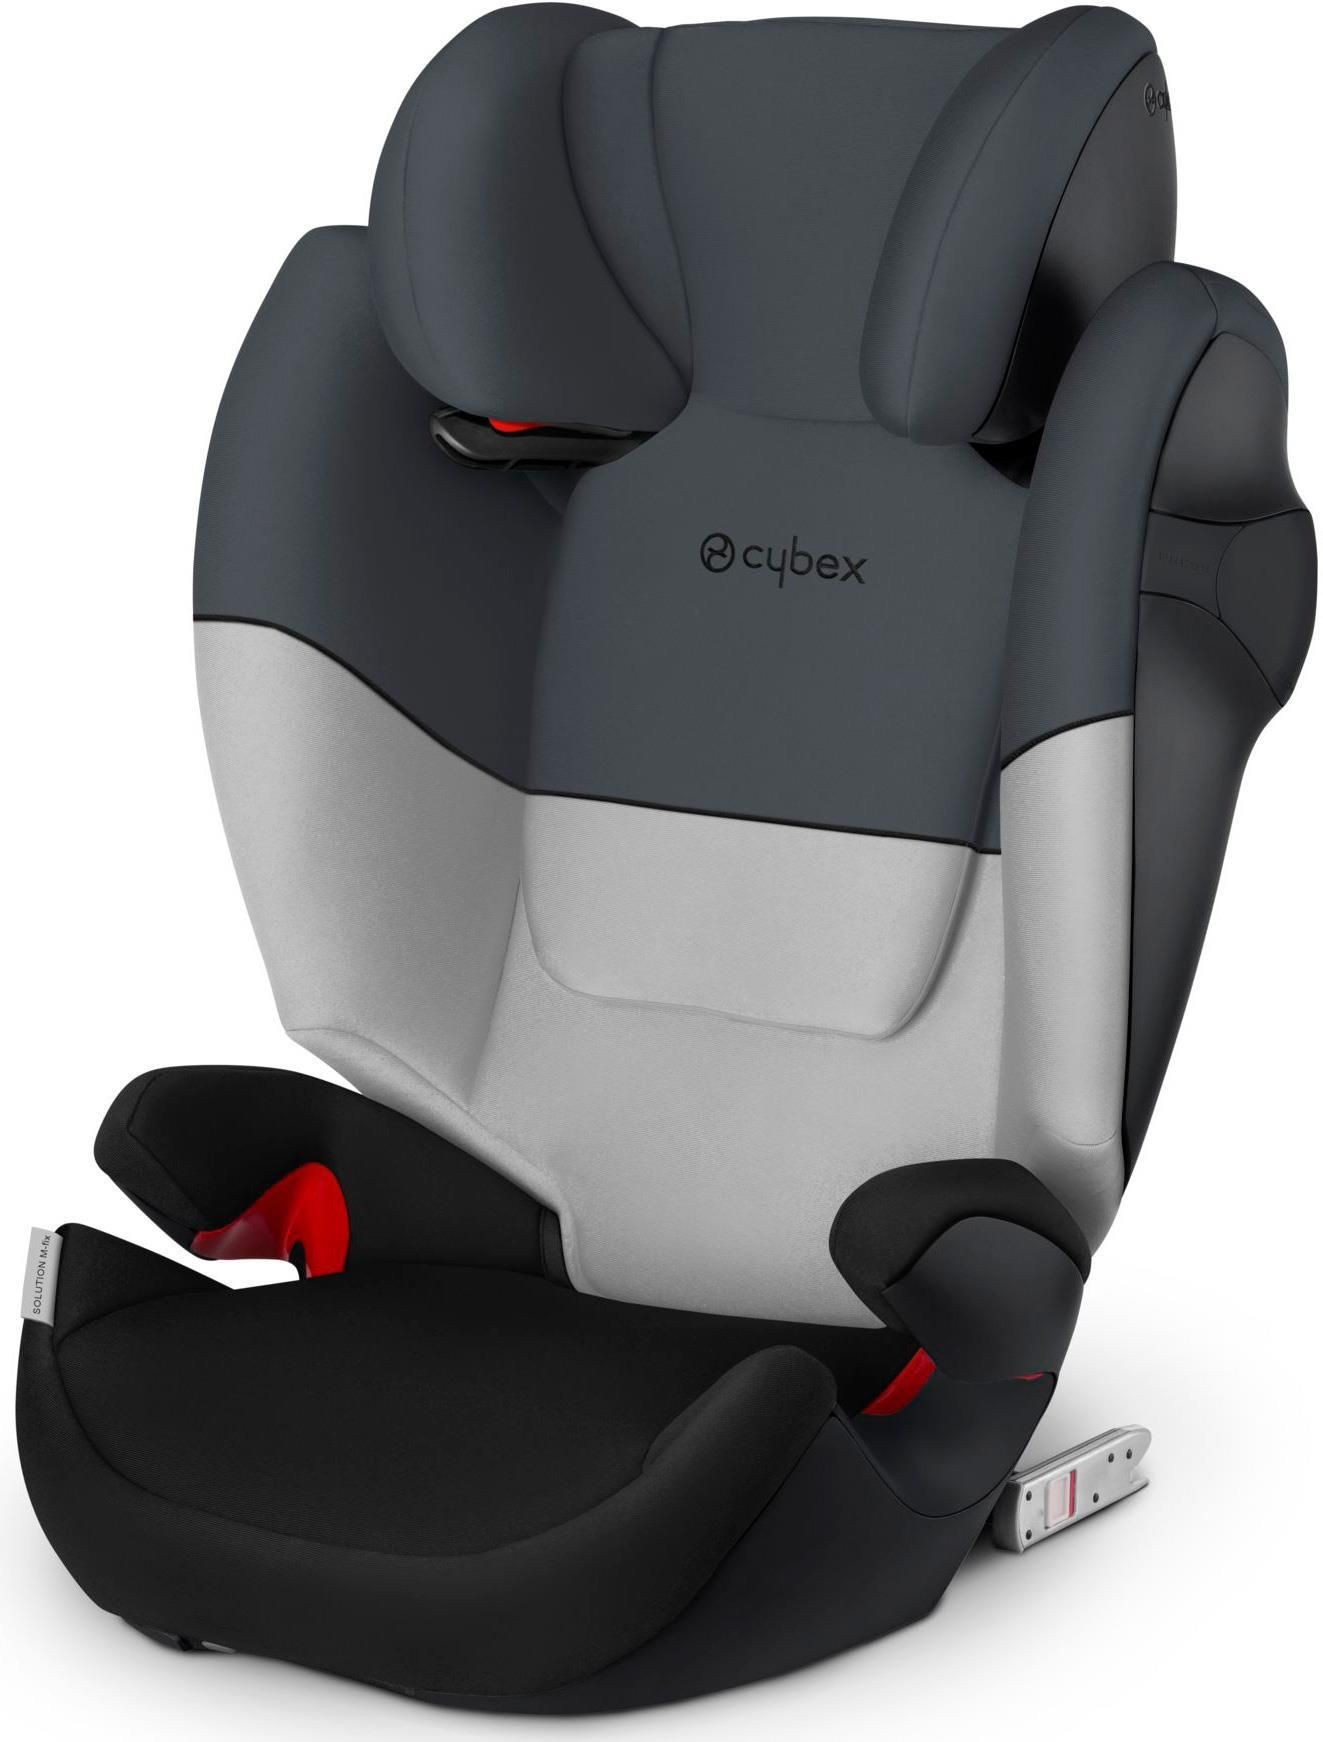 Cybex Solution M Fix Group 23 Car Seat Gray Rabbit In 2020 Car Seats Baby Car Seats Deep Seat Cushions